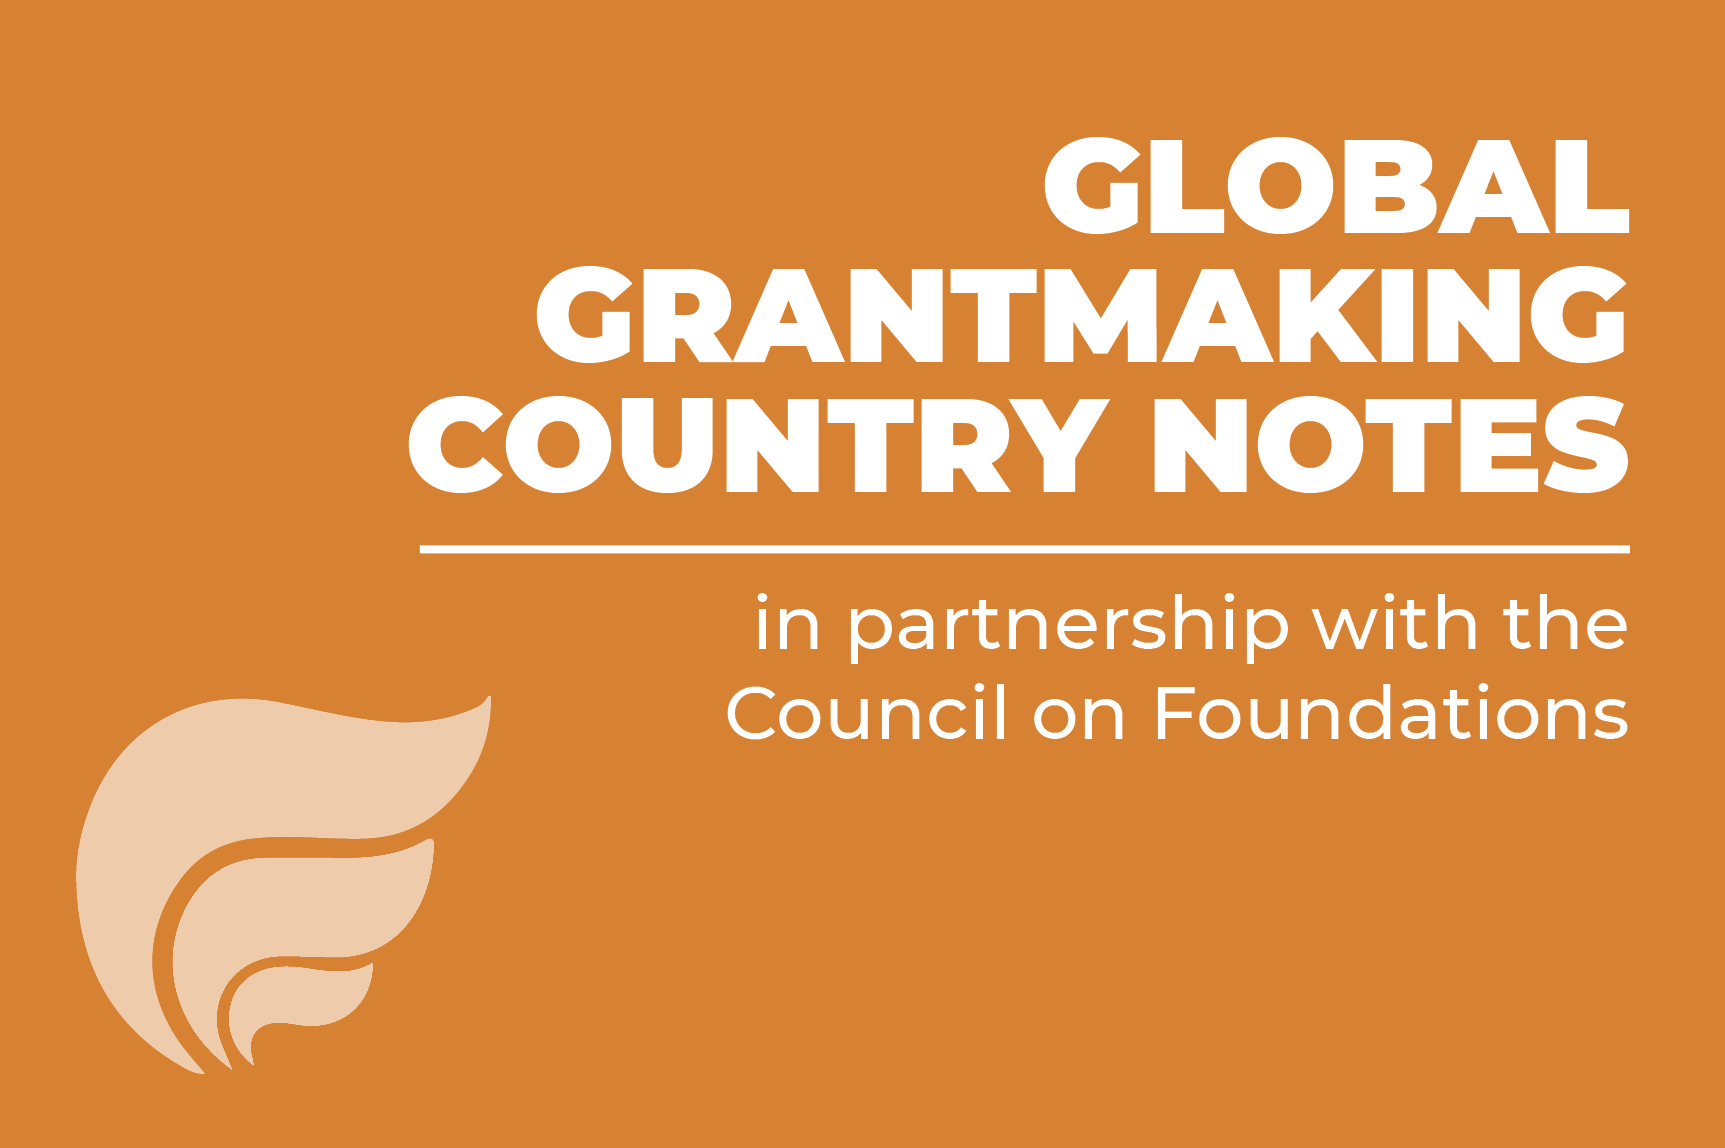 ICNL's Global Grantmaking Country Notes: A guide produced for the Council on Foundations for U.S. international grantmakers.